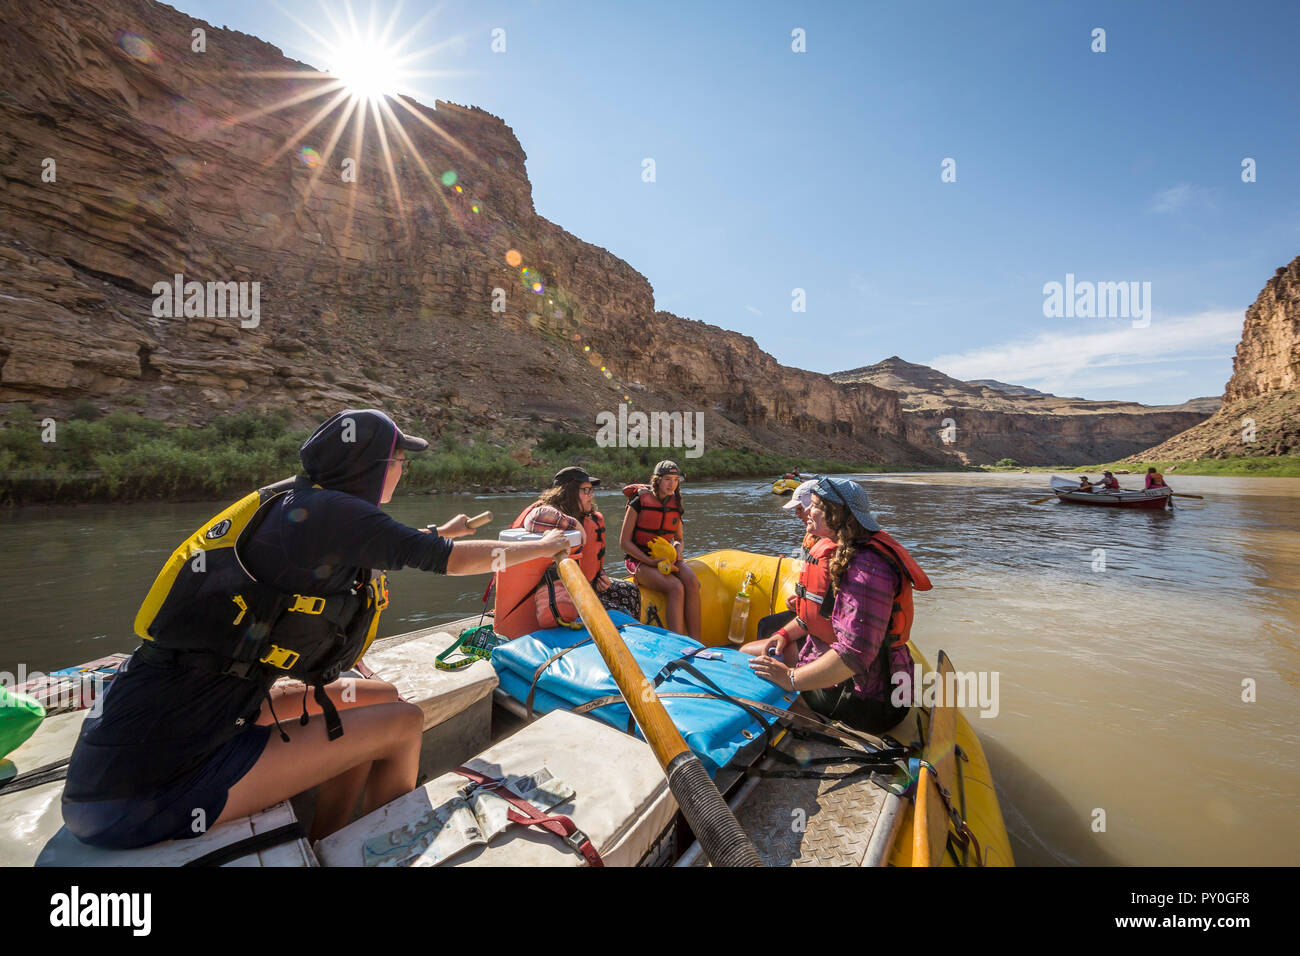 Raft guide woman with three other women passengers on raft, Desolation/Gray Canyon section, Utah, USA - Stock Image